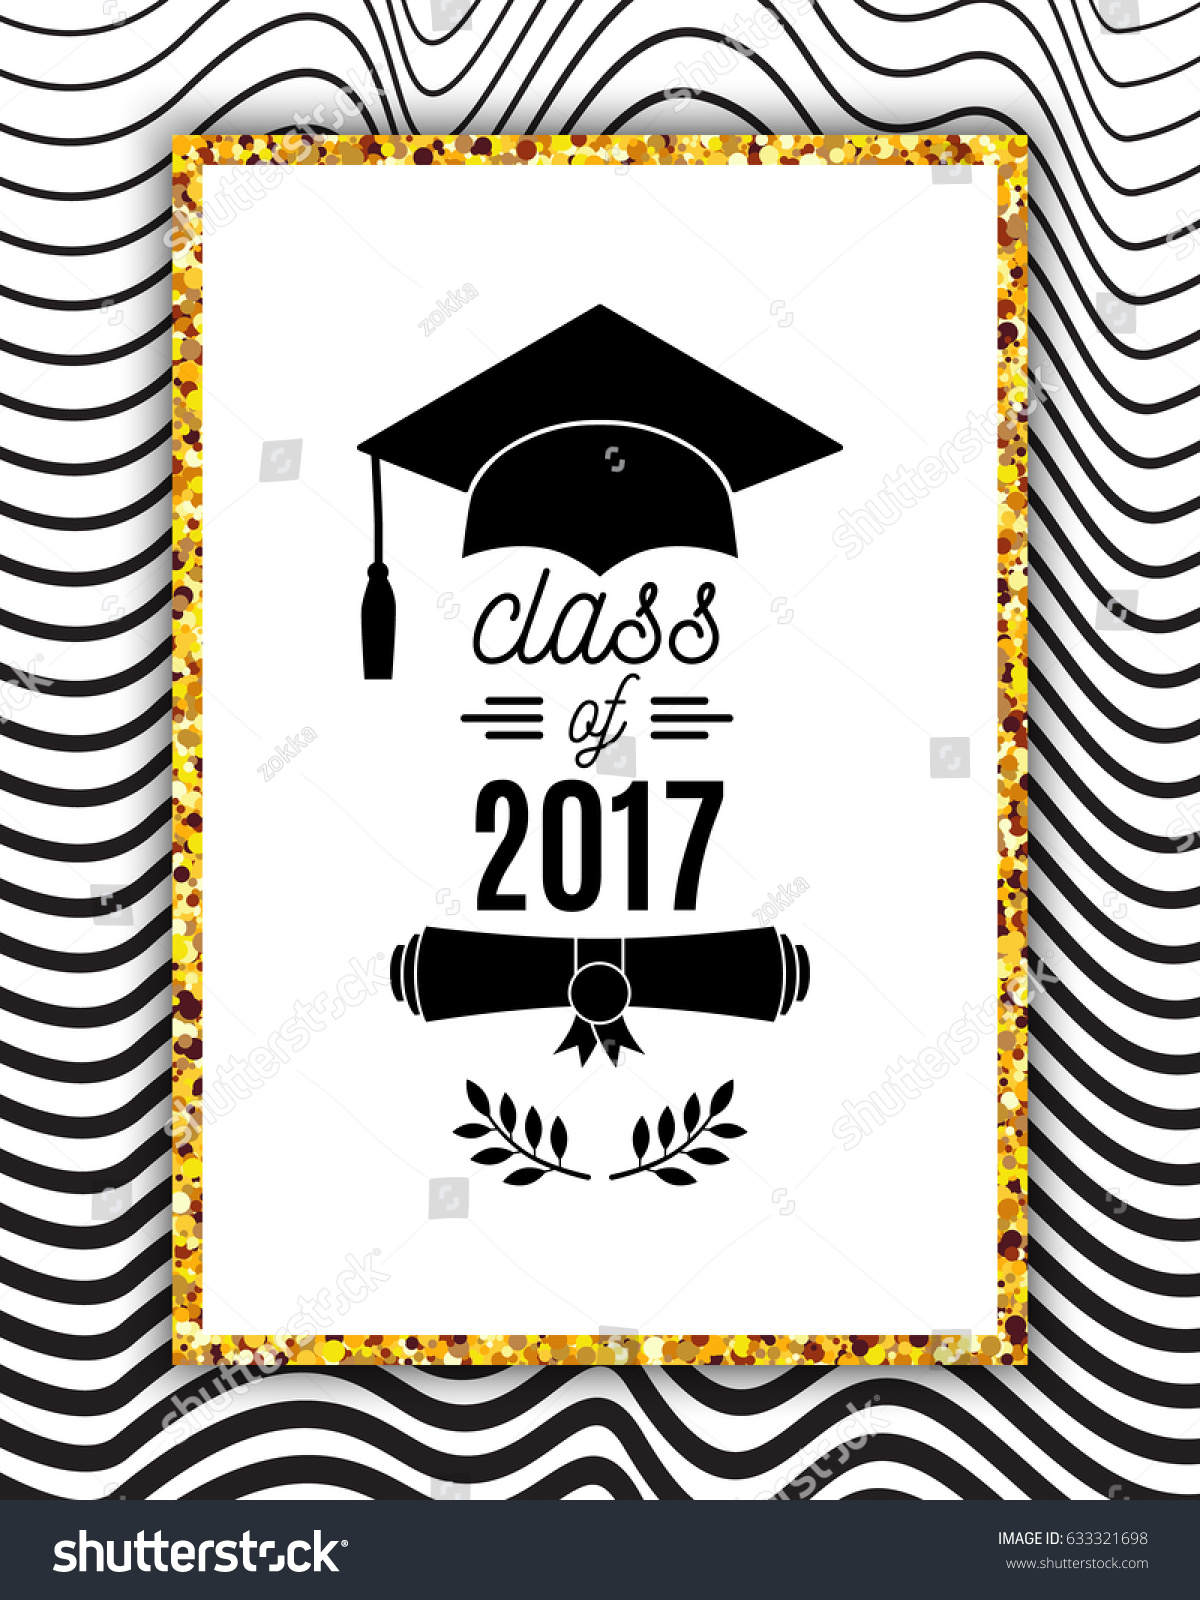 Class 2017 Greeting Card Hat Scroll Stock-Vektorgrafik (Lizenzfrei ...